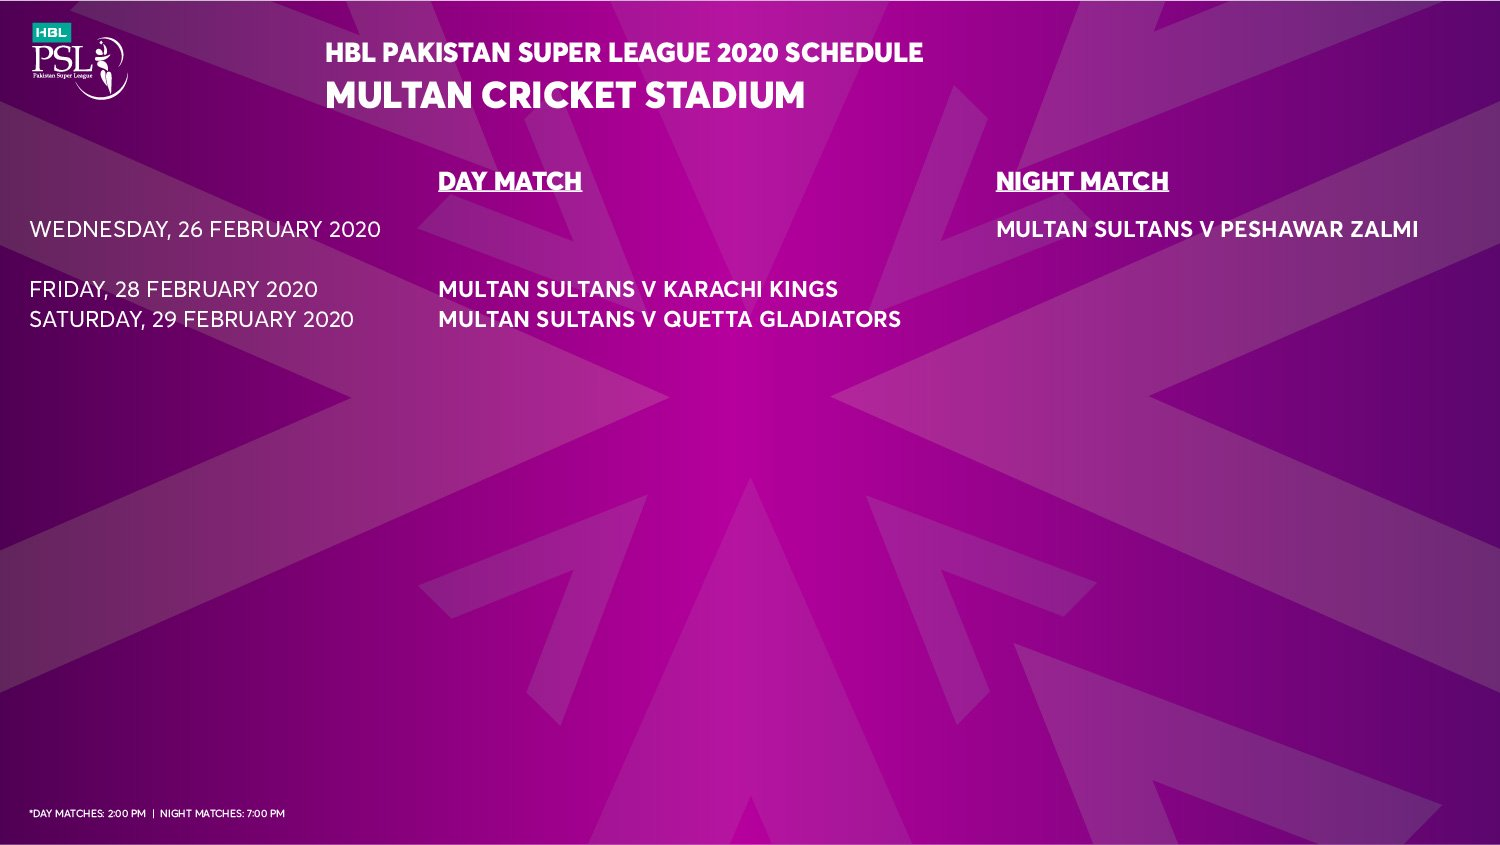 Multan Cricket Stadium schedule